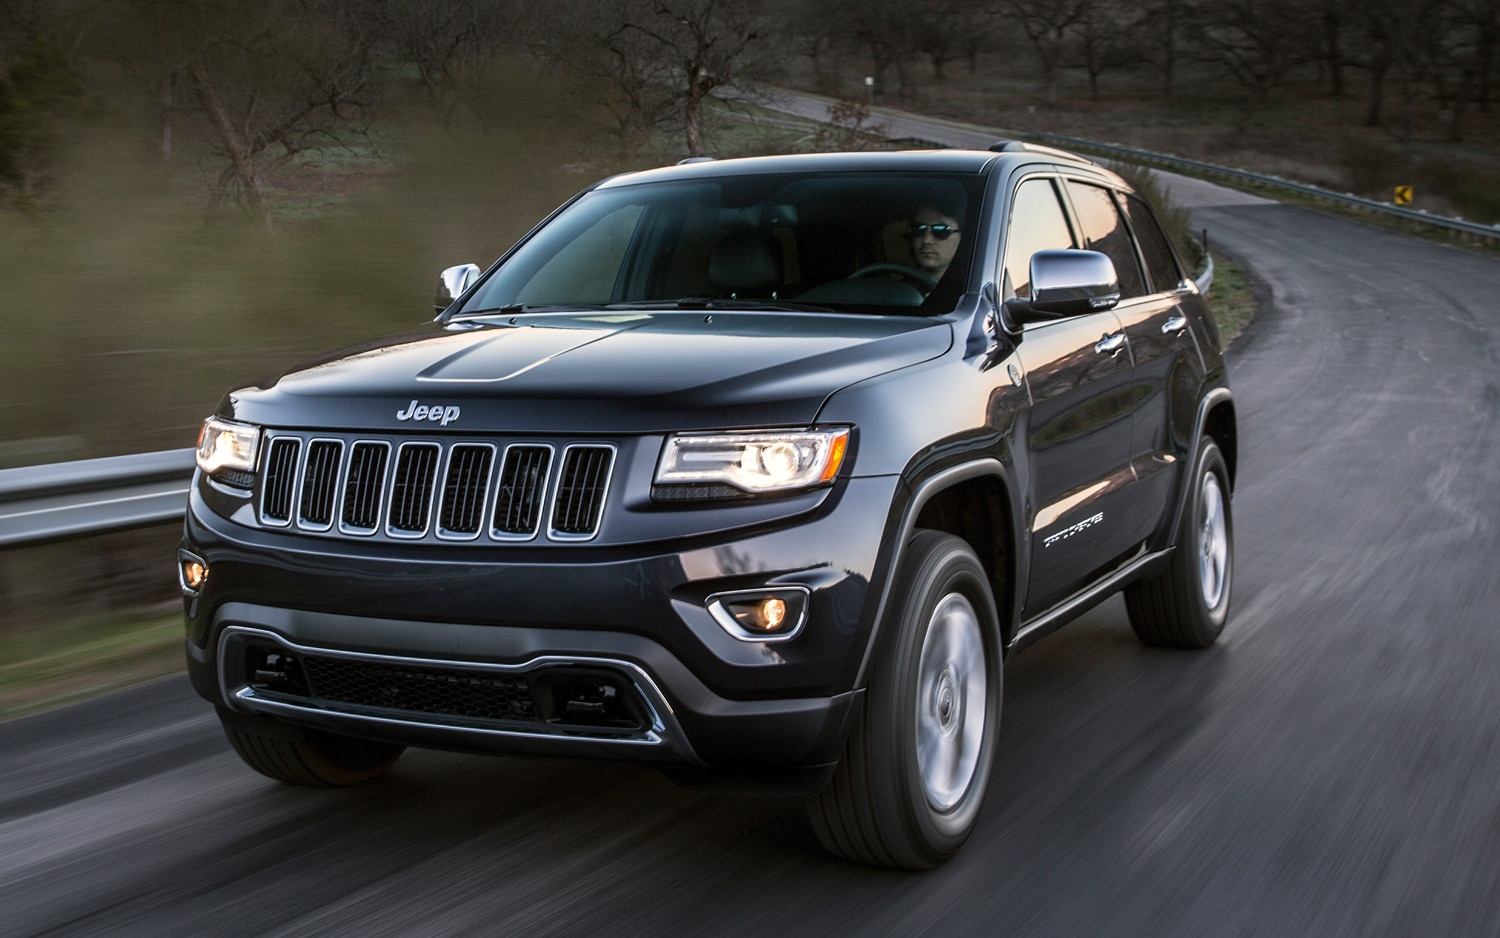 2014 Jeep Grand Cherokee Diesel Front Three Quarters In Motion View